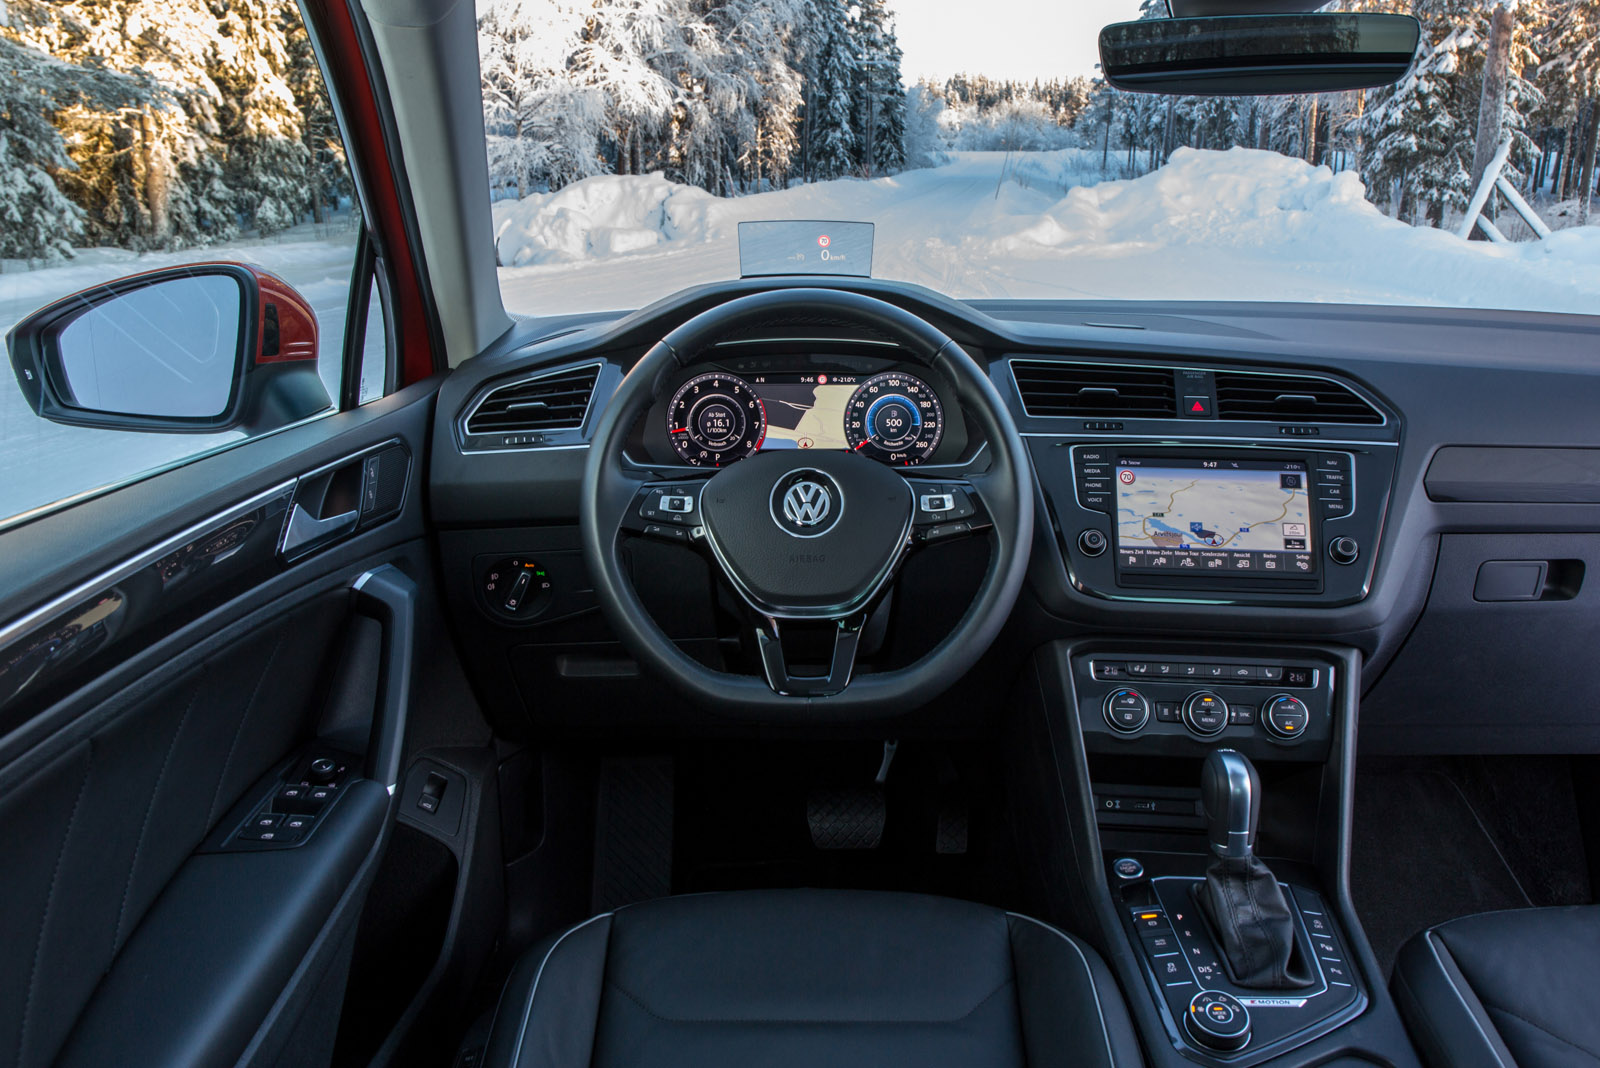 2017 volkswagen tiguan review gtspirit for Interieur tiguan 2017